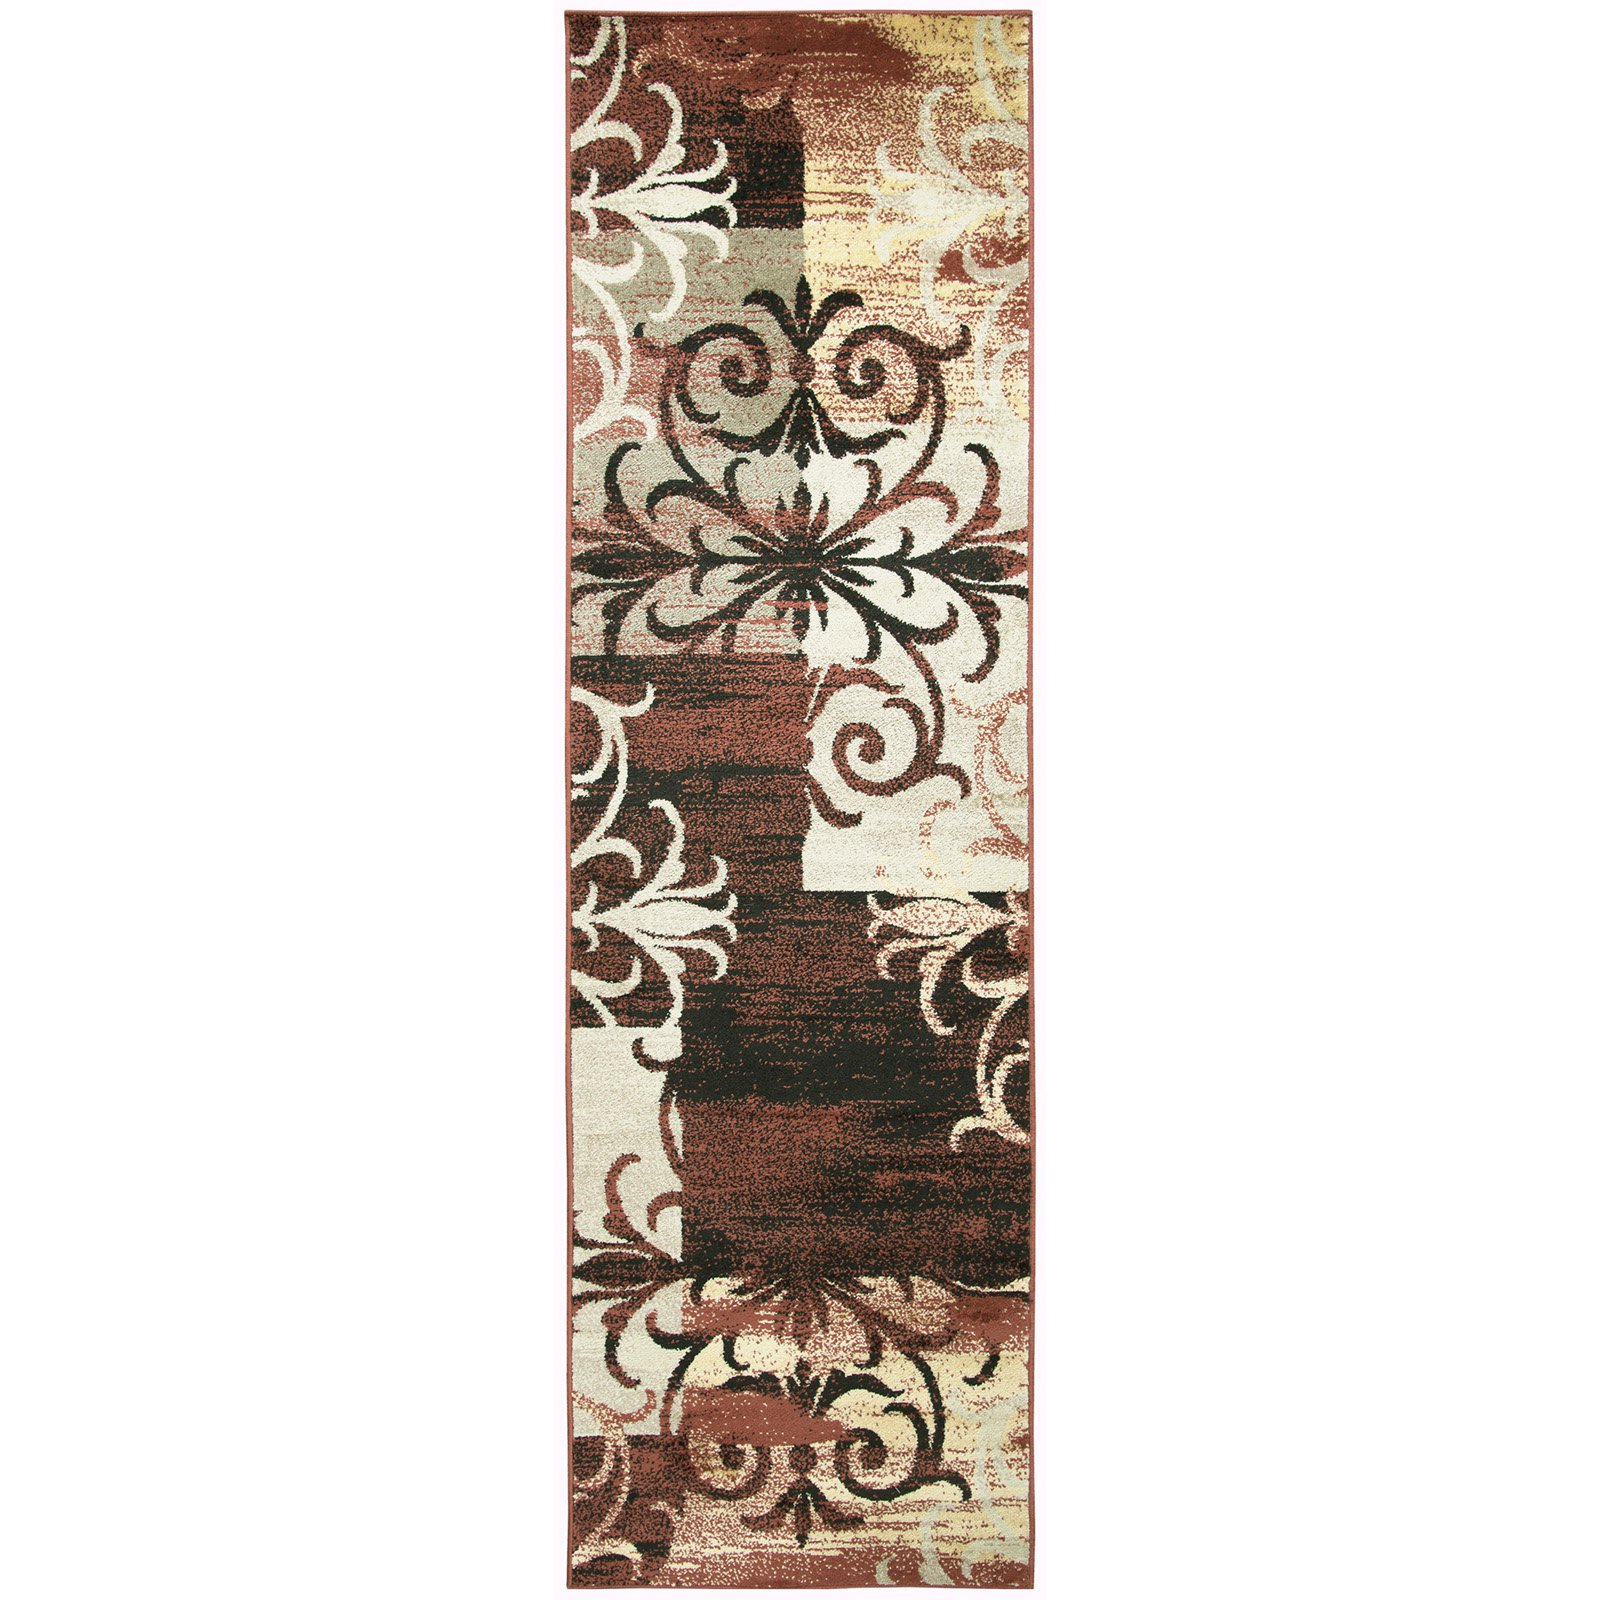 Rizzy Home Bayside BS3592 Rug - (9 Foot 2 Inch x 12 Foot 6 Inch)